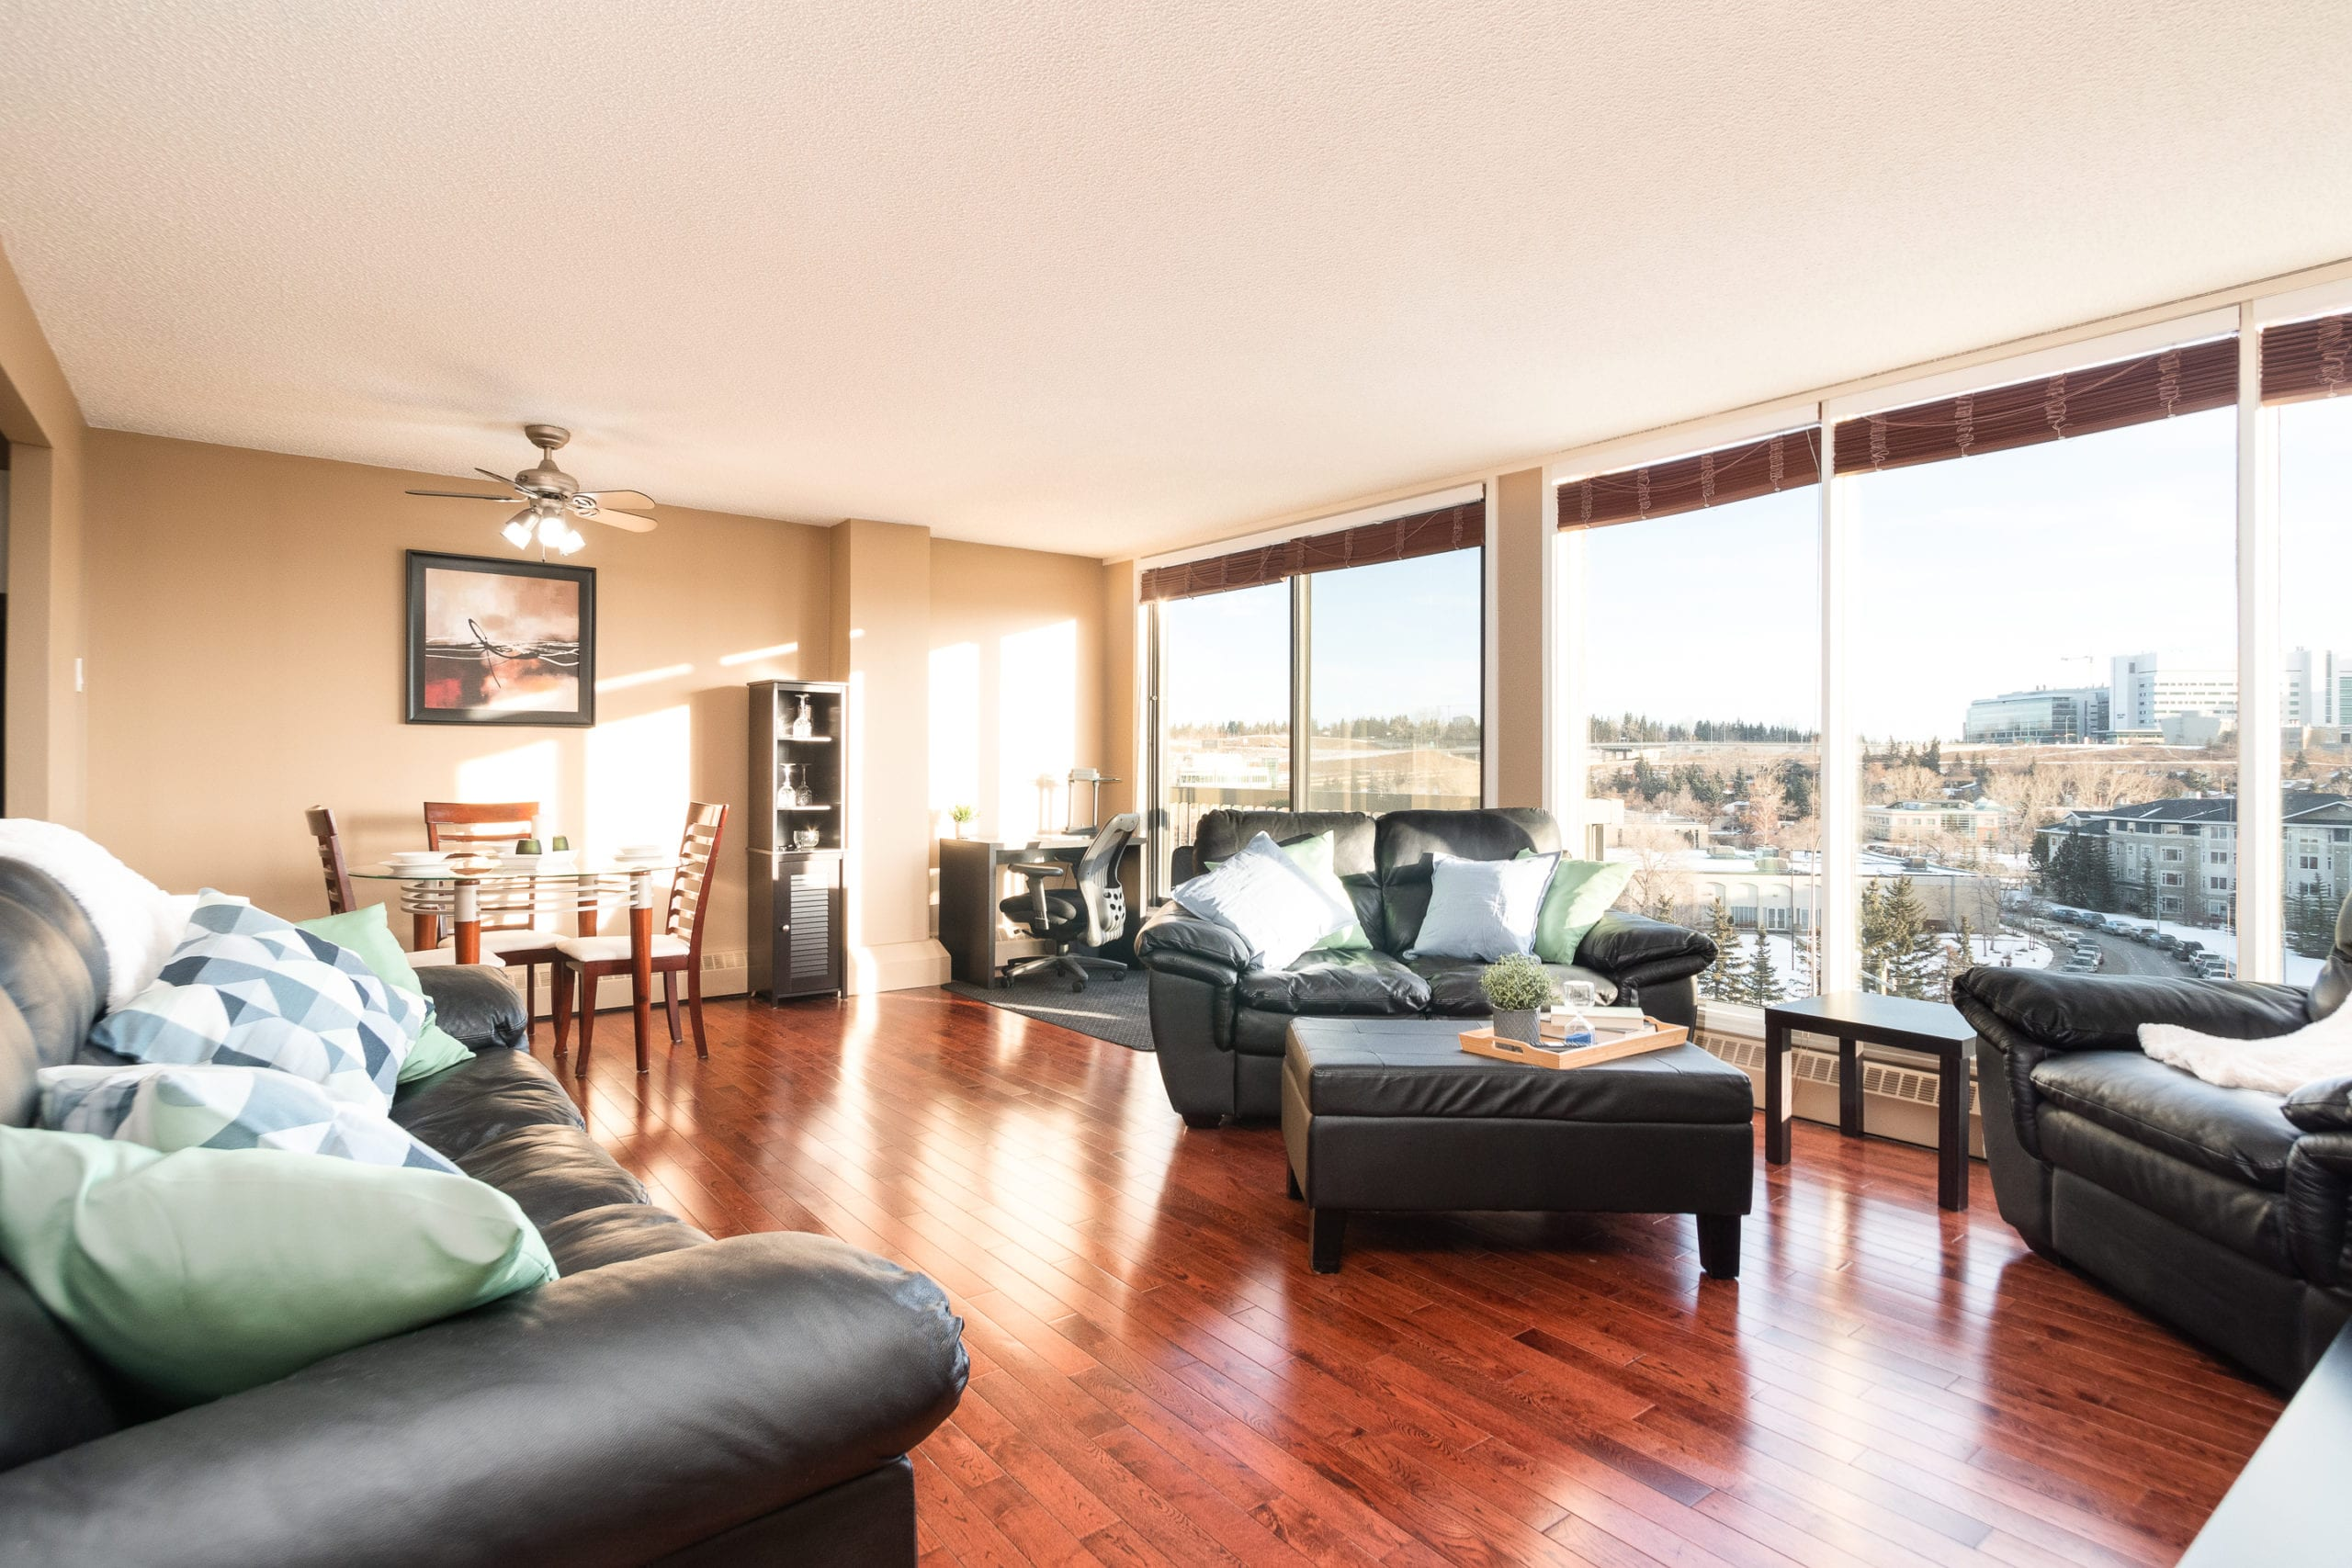 Hello Gorgeous - #705-145 point drive NW, Calgary AB - Tara Molina Real Estate (2 of 45)